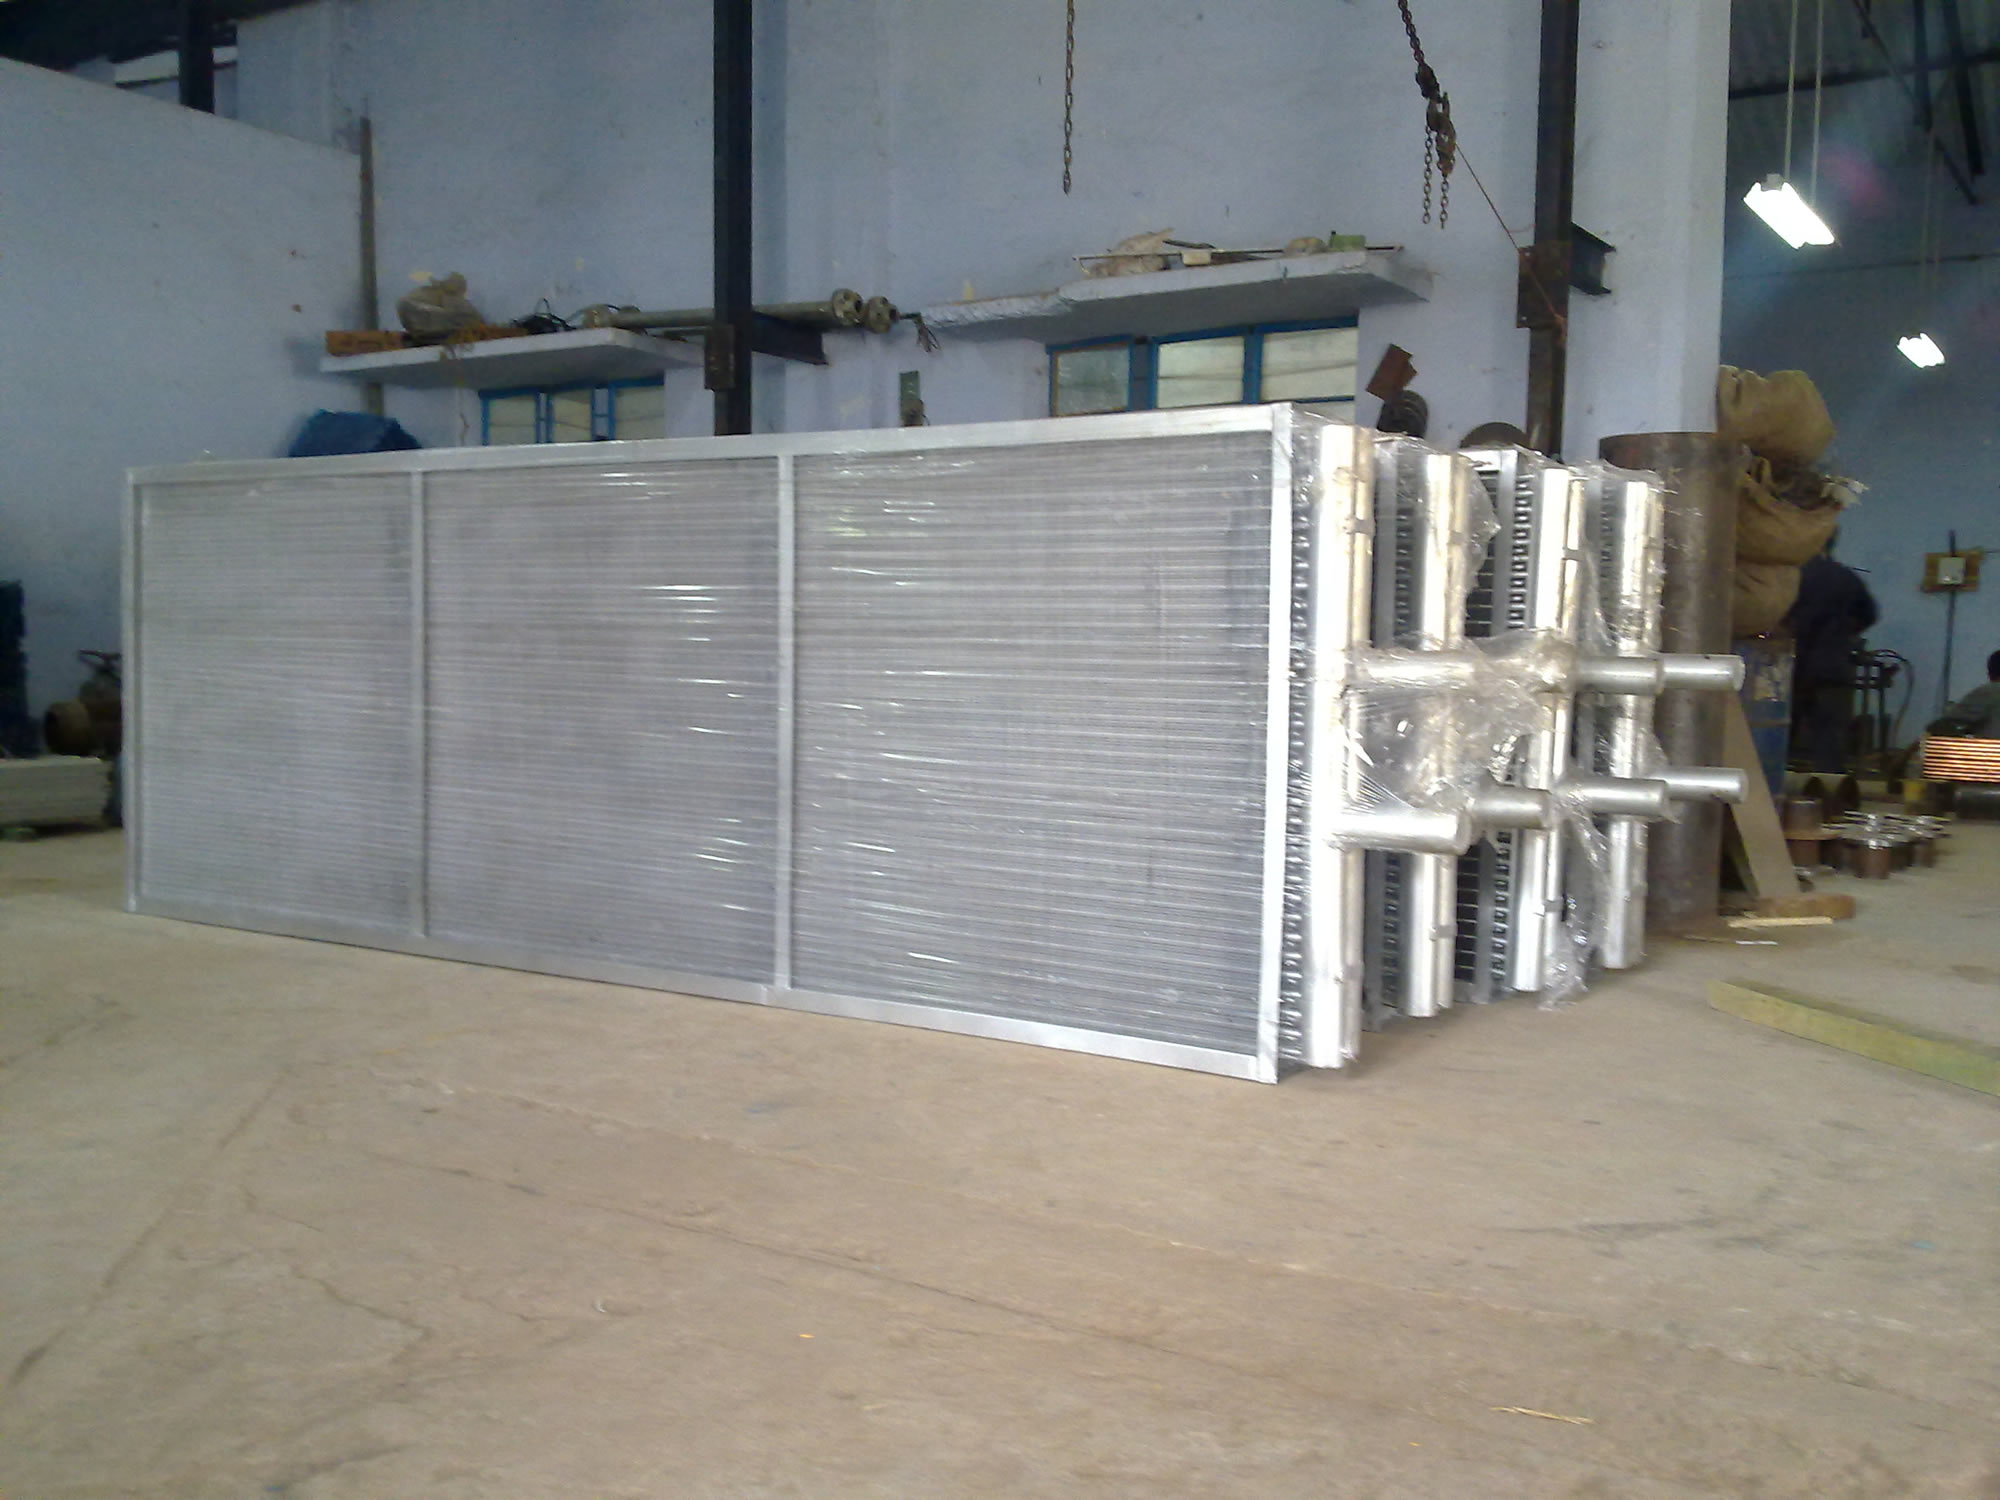 dry-cooling-tower